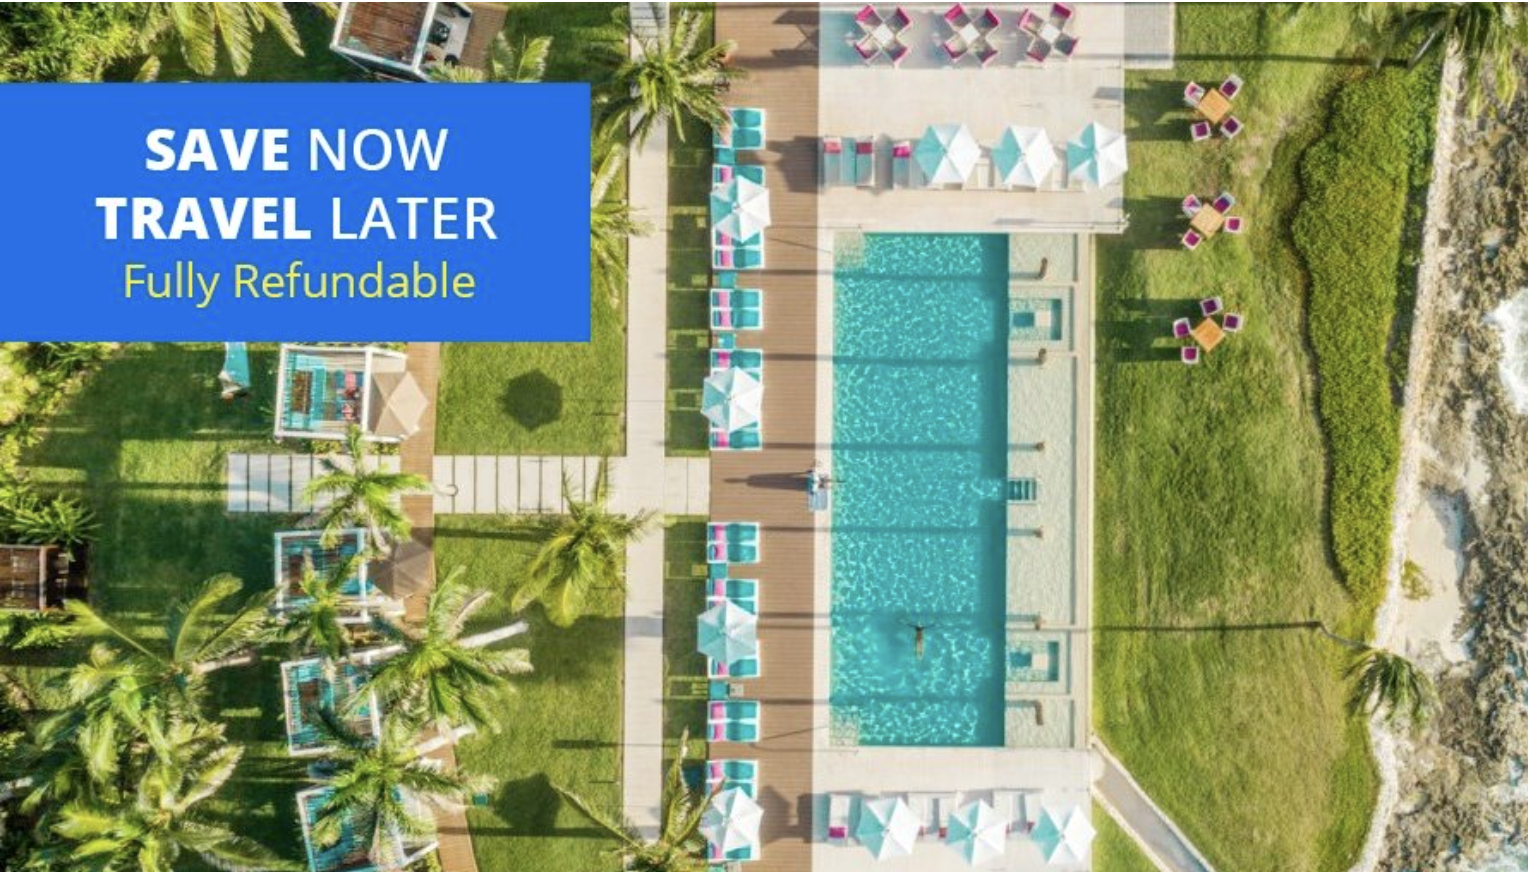 Club Med Florida promotion